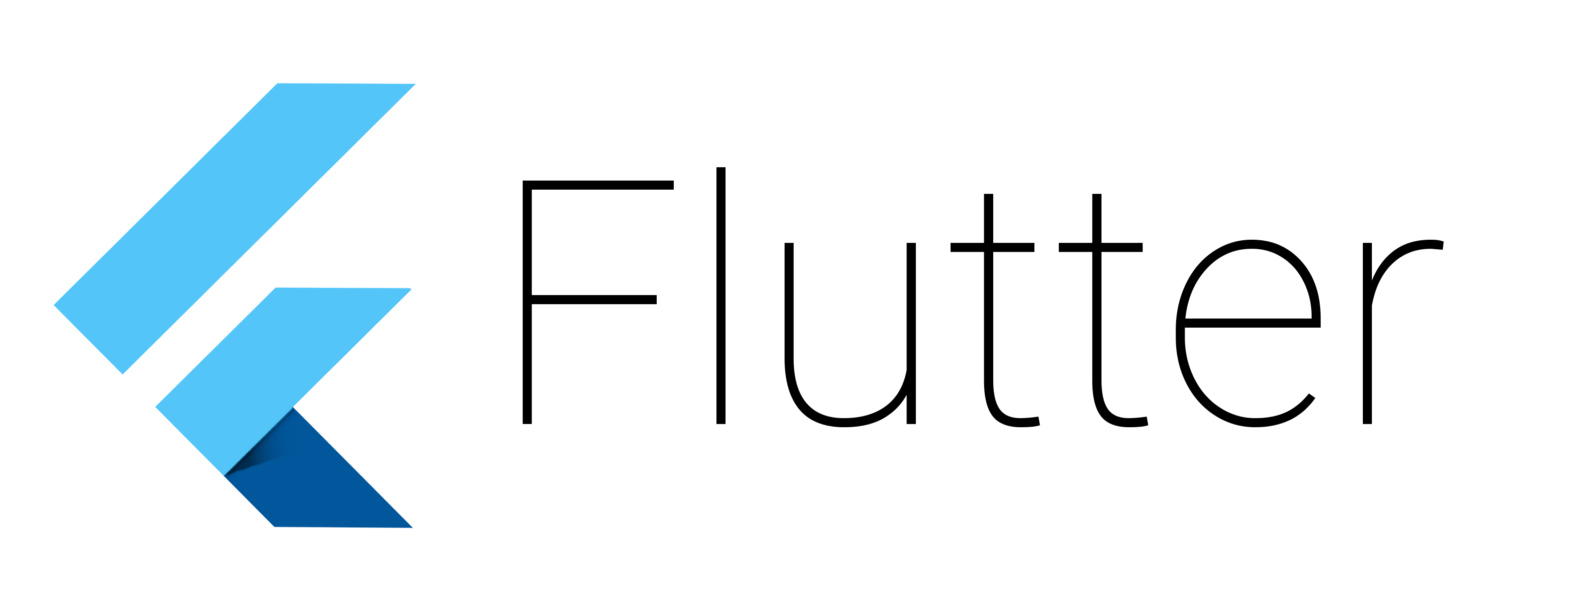 how to make betting site flutter